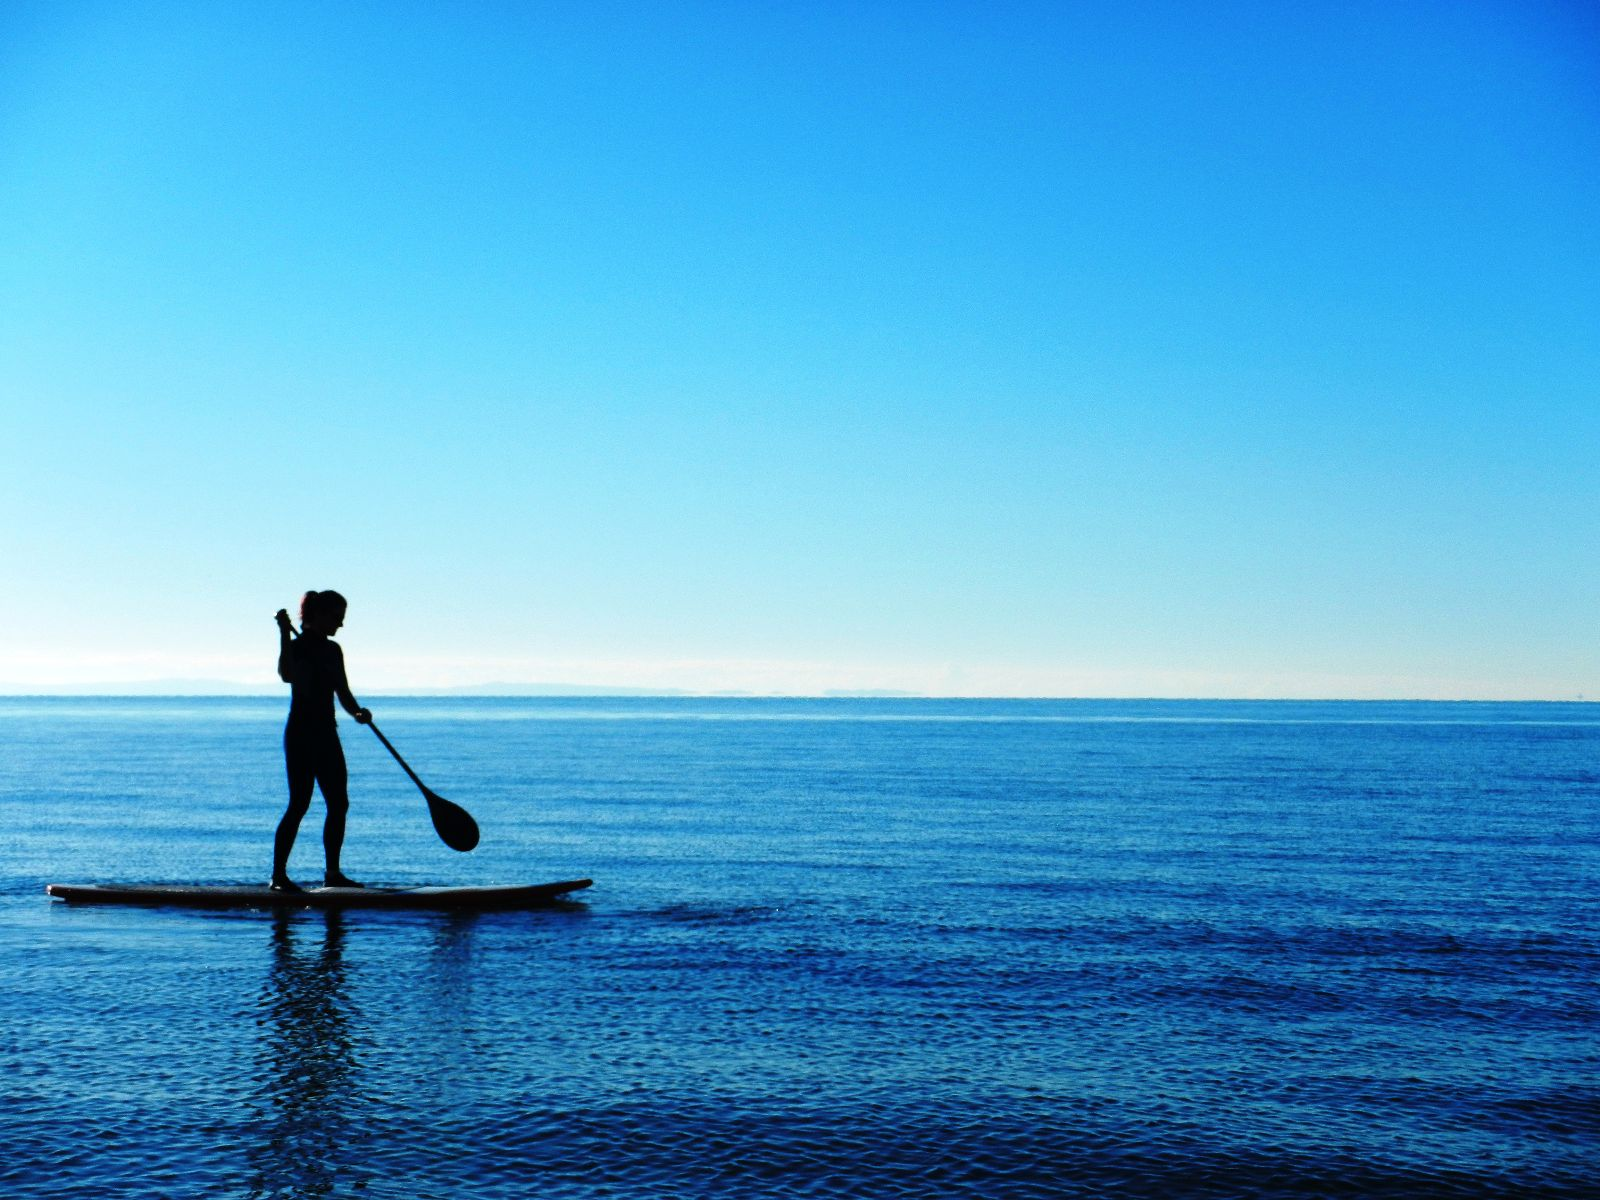 Standup-Paddle-Boarding-Wallpaper-2